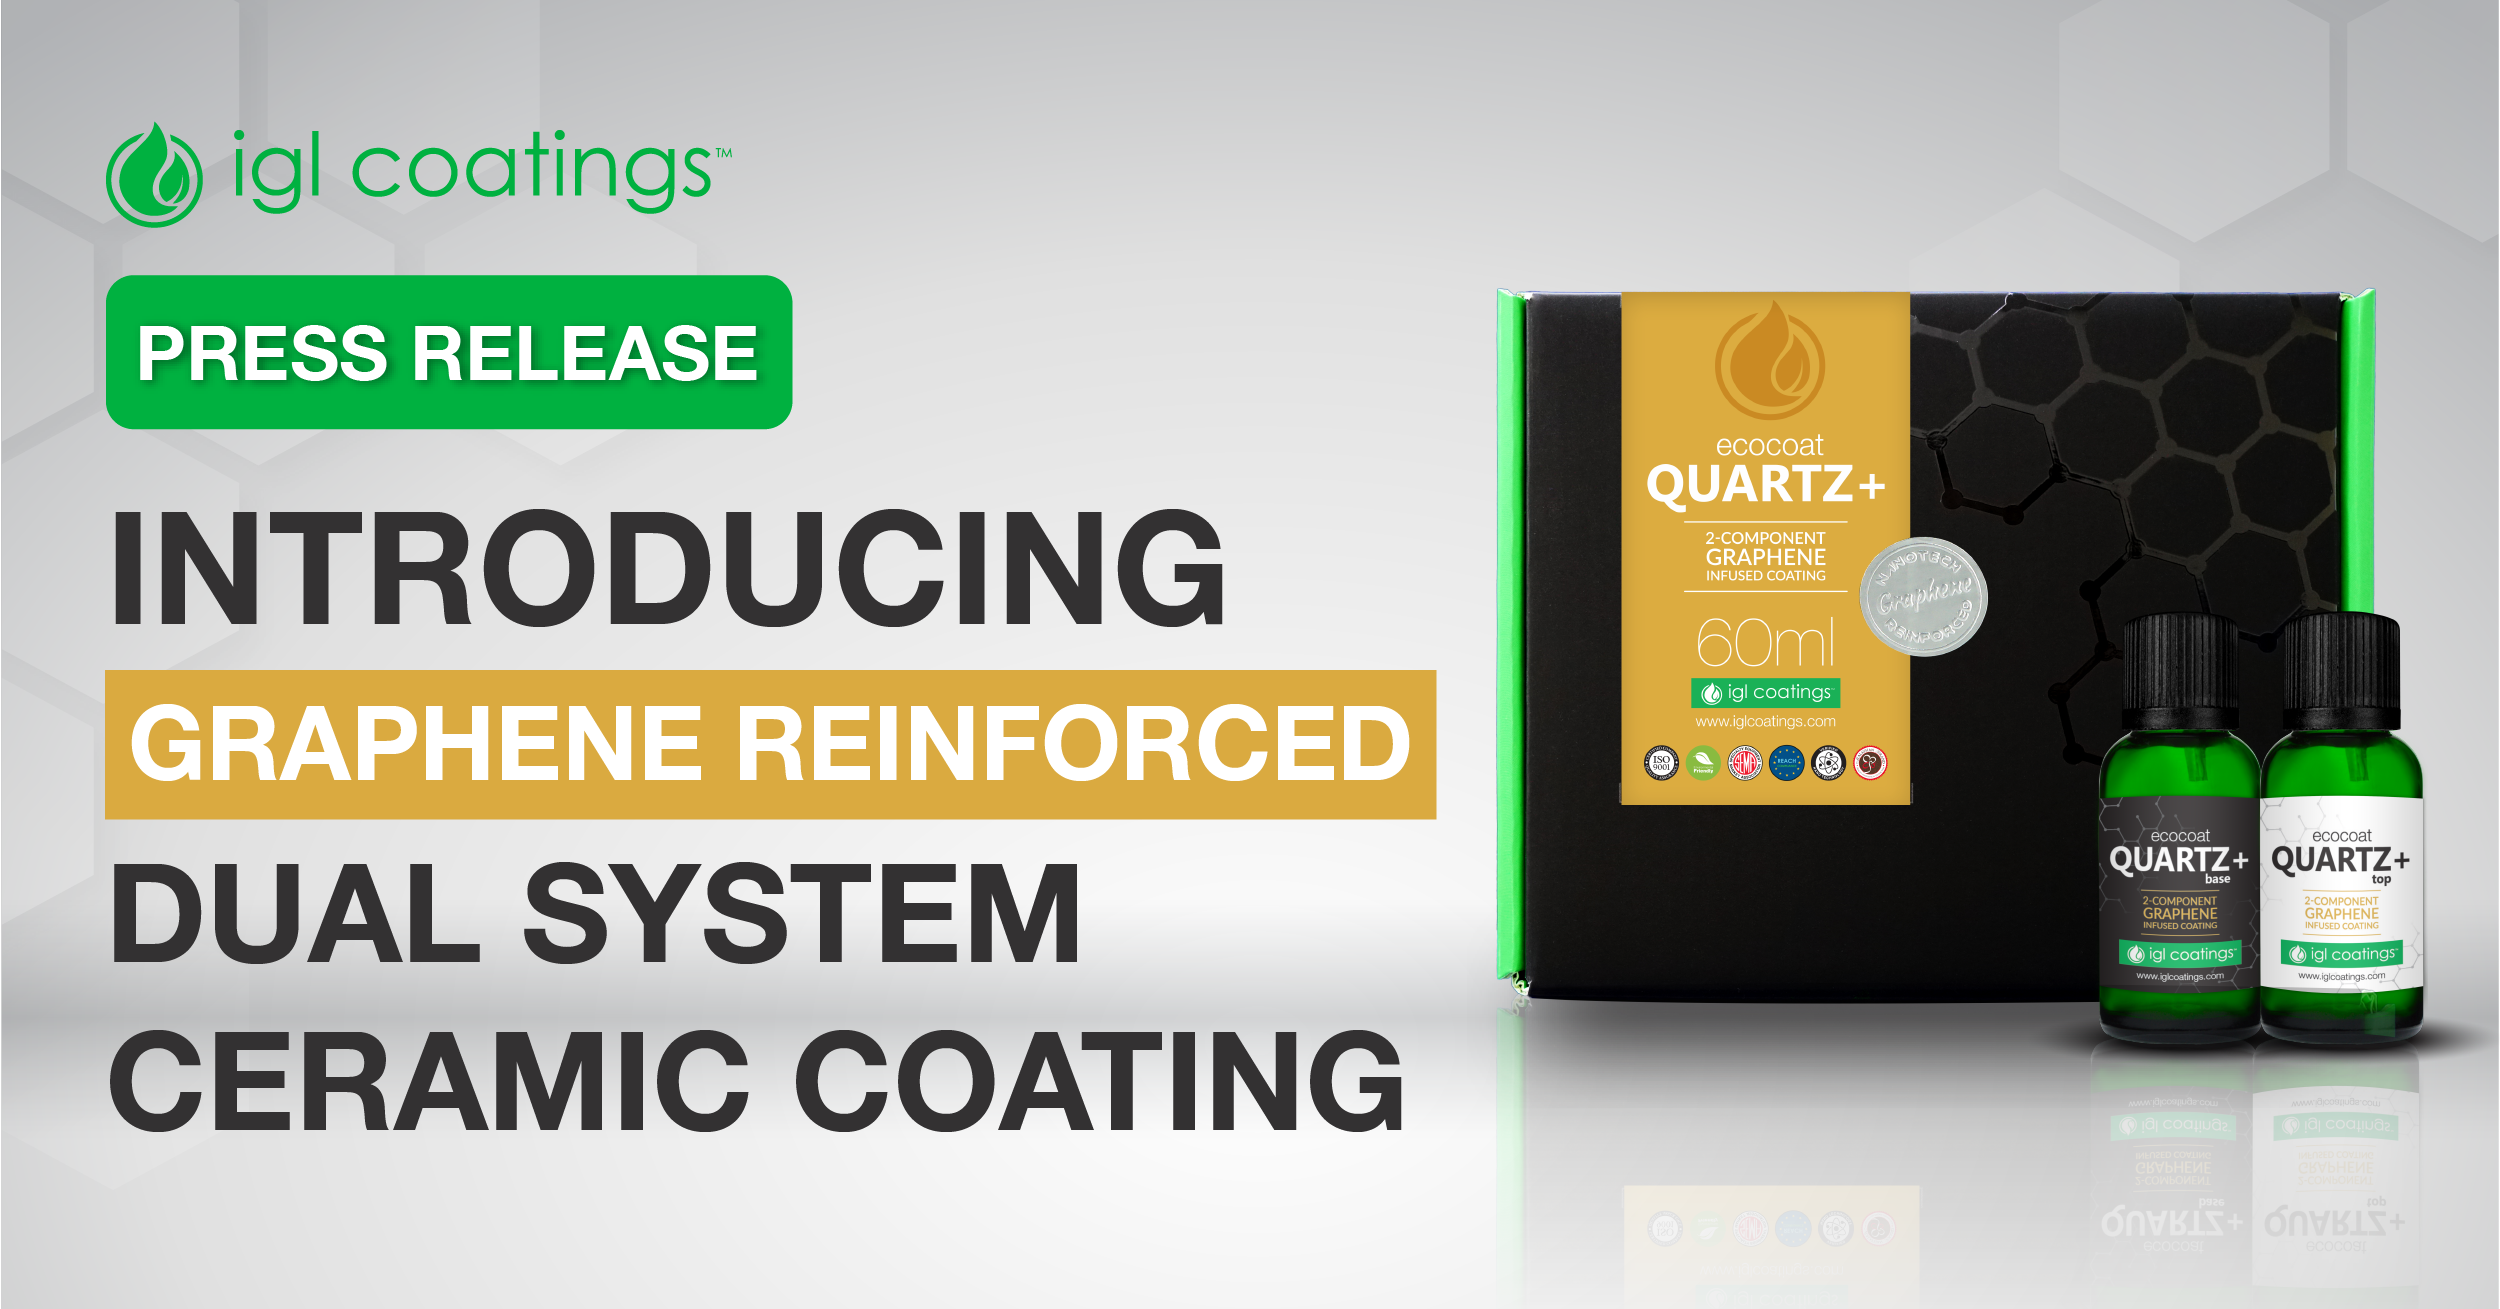 Press Release: Introducing Graphene Reinforced Dual System Ceramic Coating